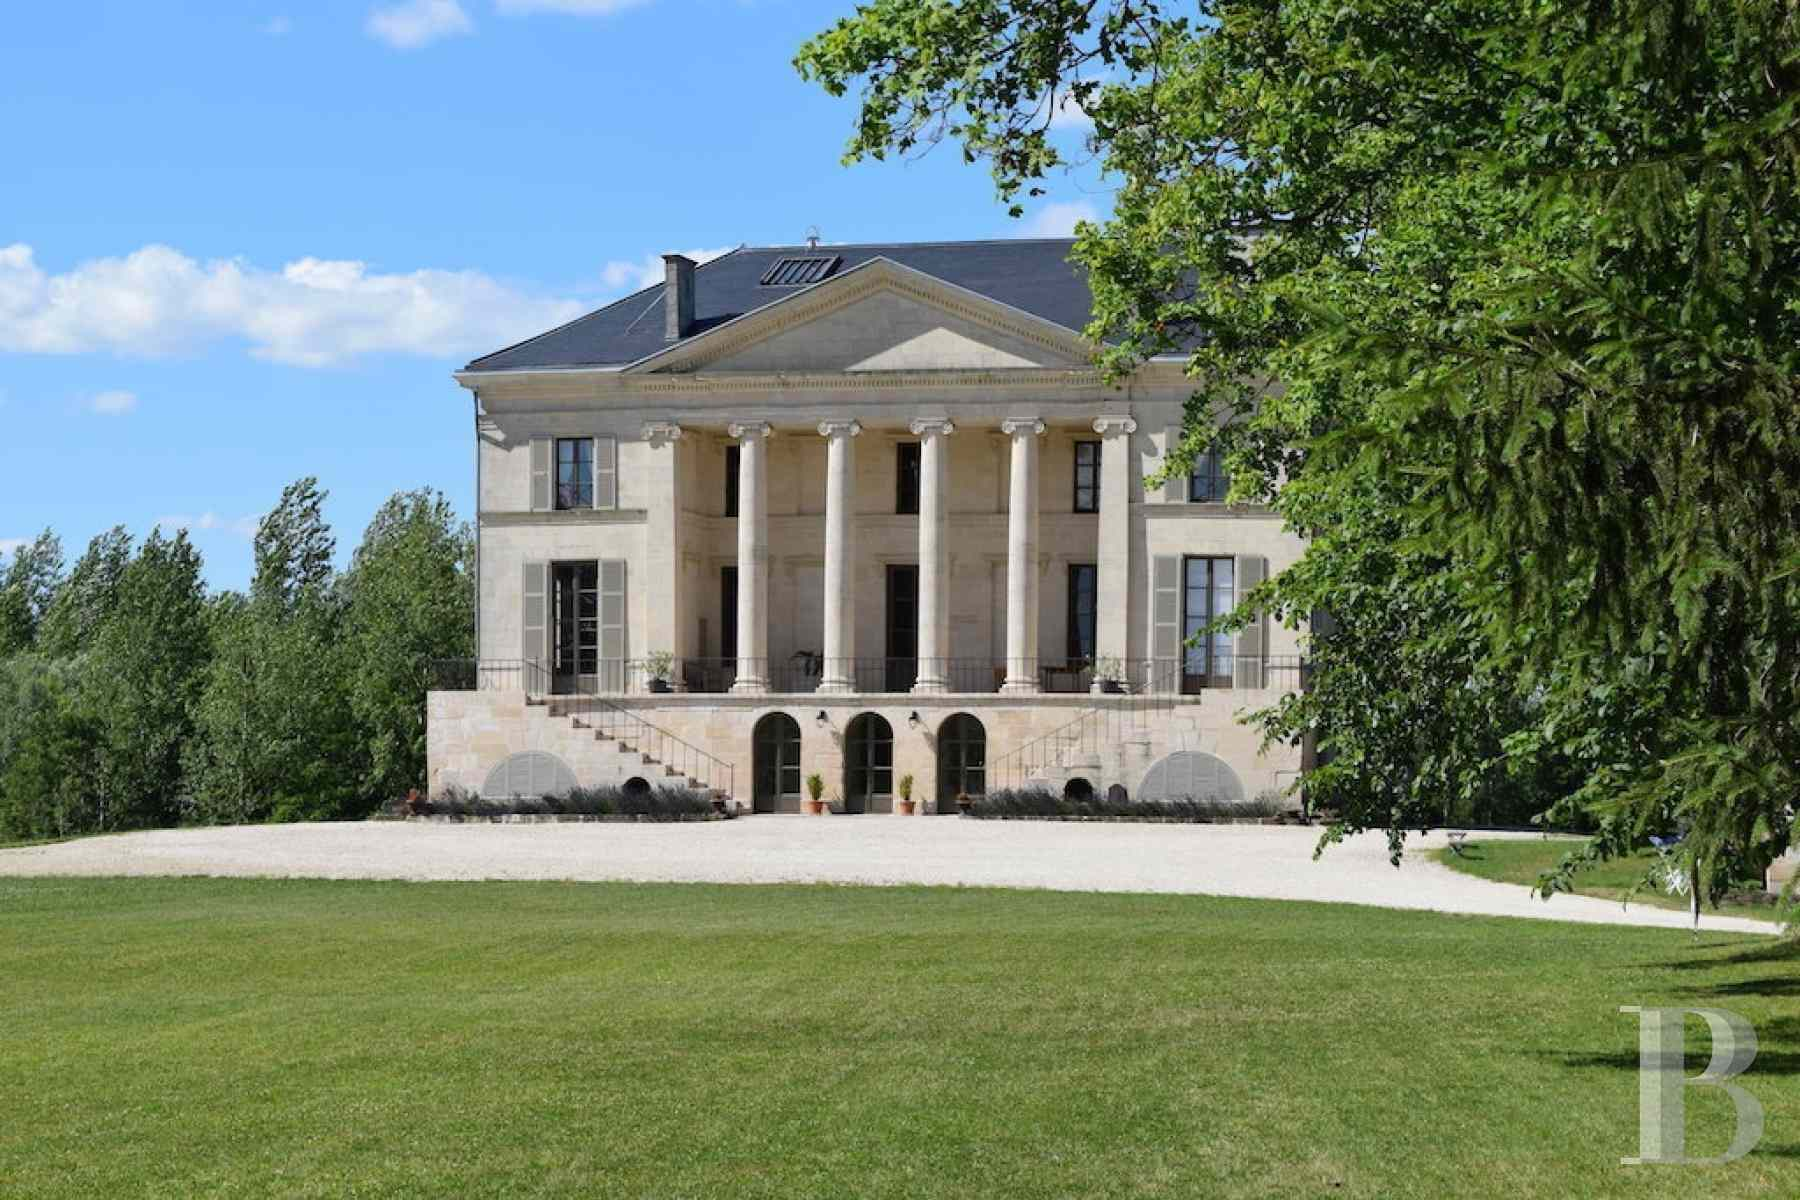 chateaux for sale France champagne ardennes neo palladian - 1 zoom